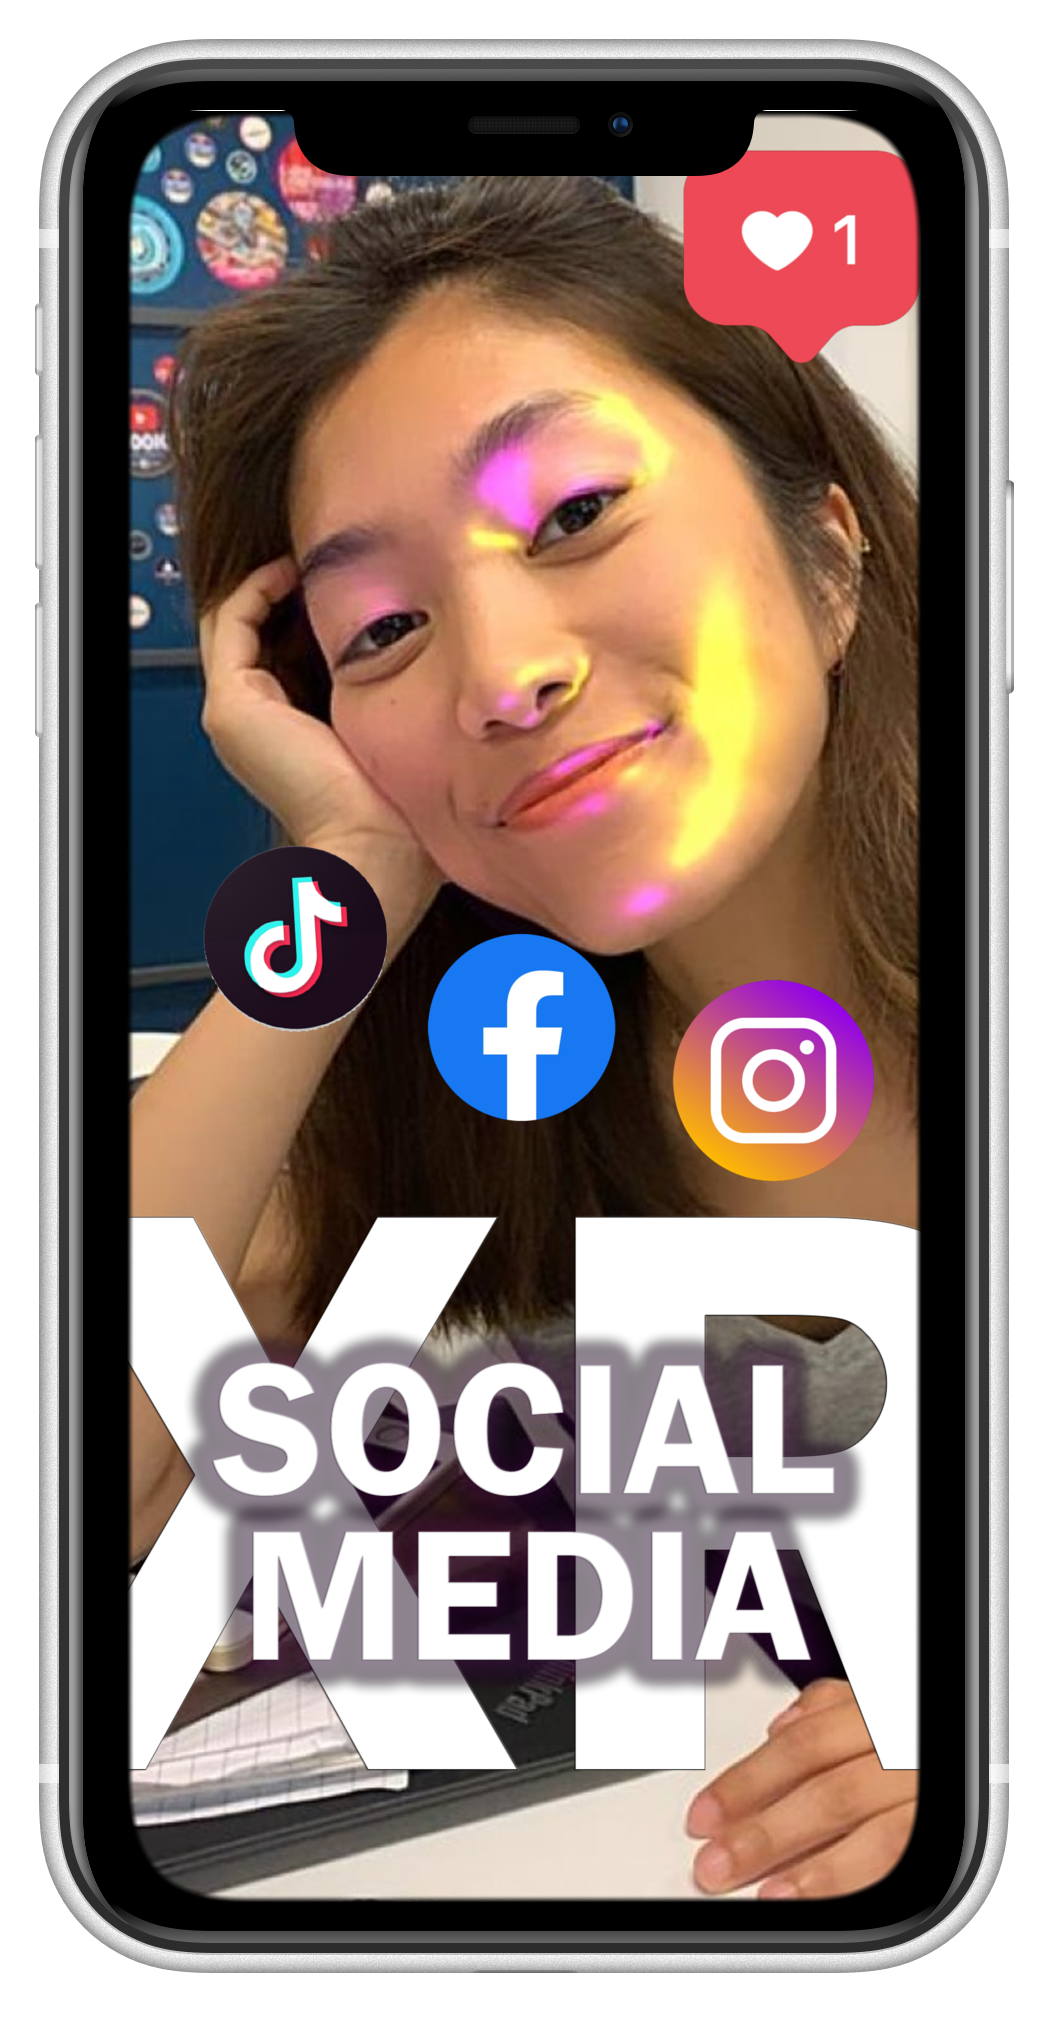 Mockup of a phone with a banner that says Social Media